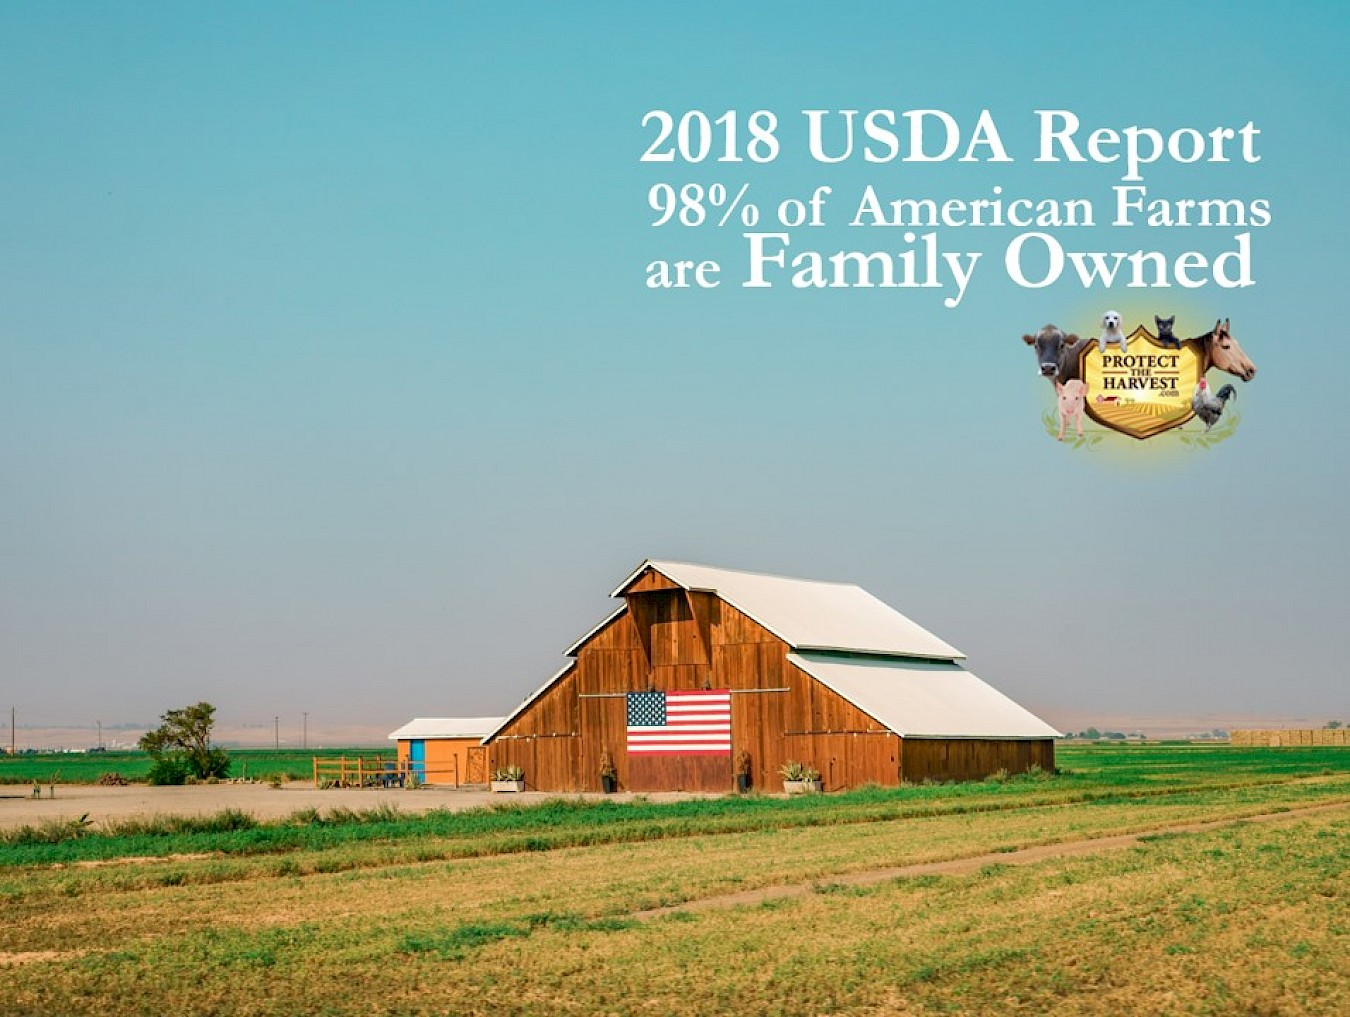 USDA 2018 Family Farm Report - 98% of American Farms are Family Owned